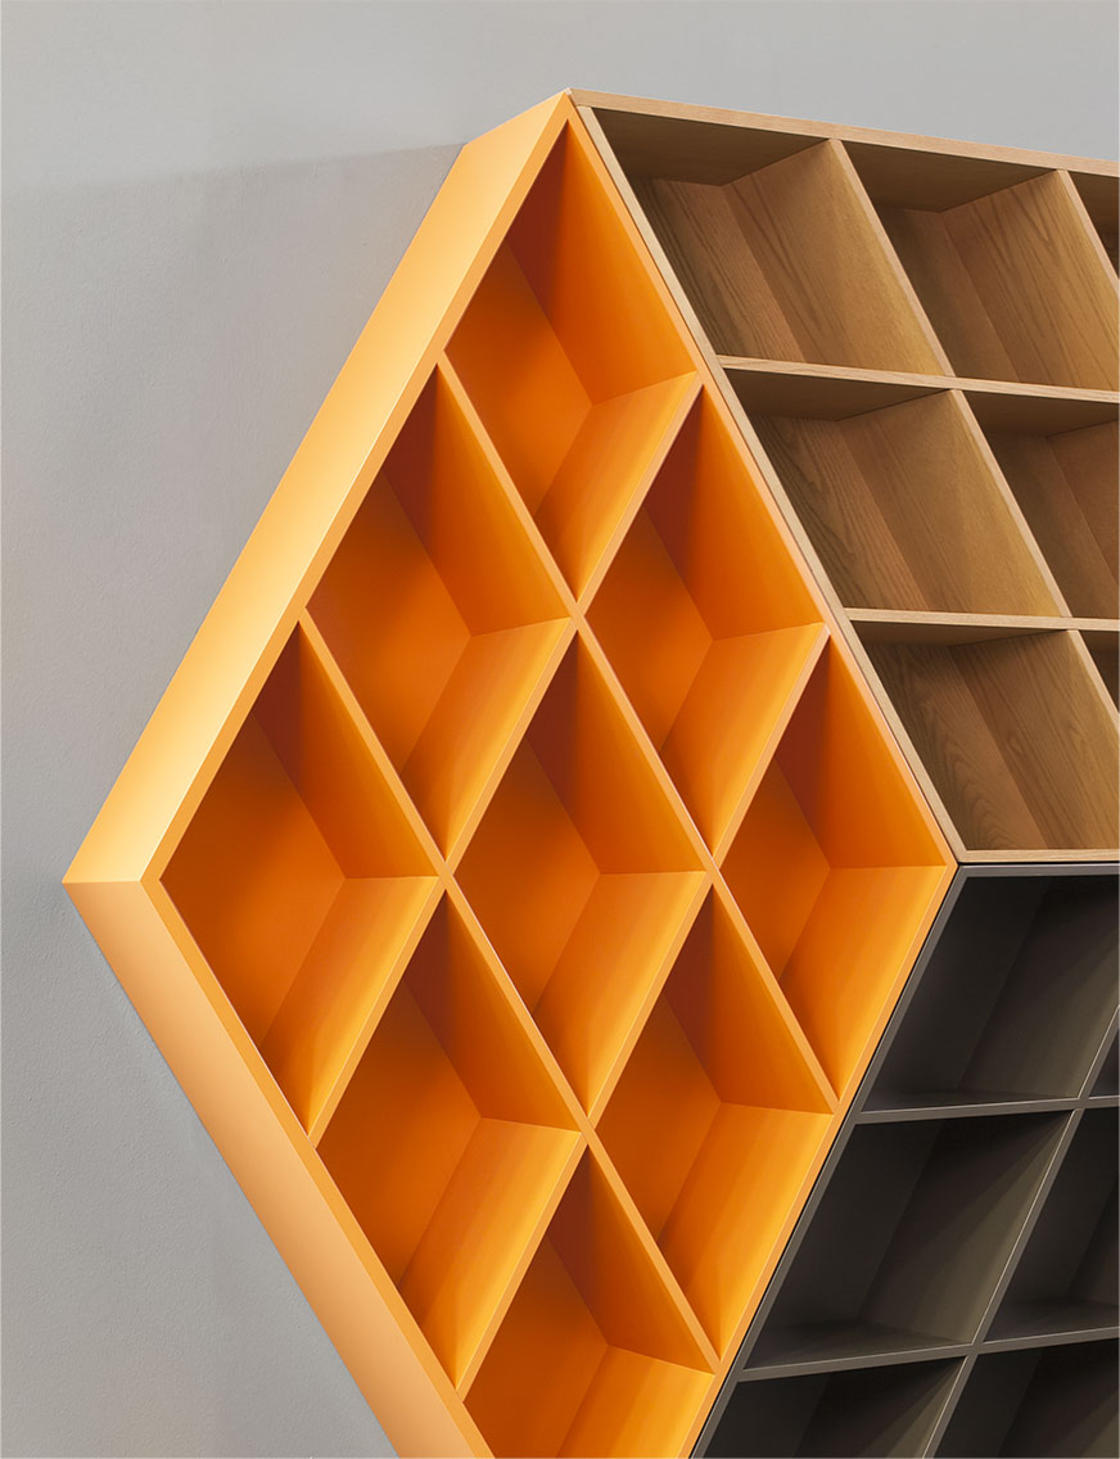 Rubika Bookcase – A beautiful bookcase paying tribute to the Rubik's Cube